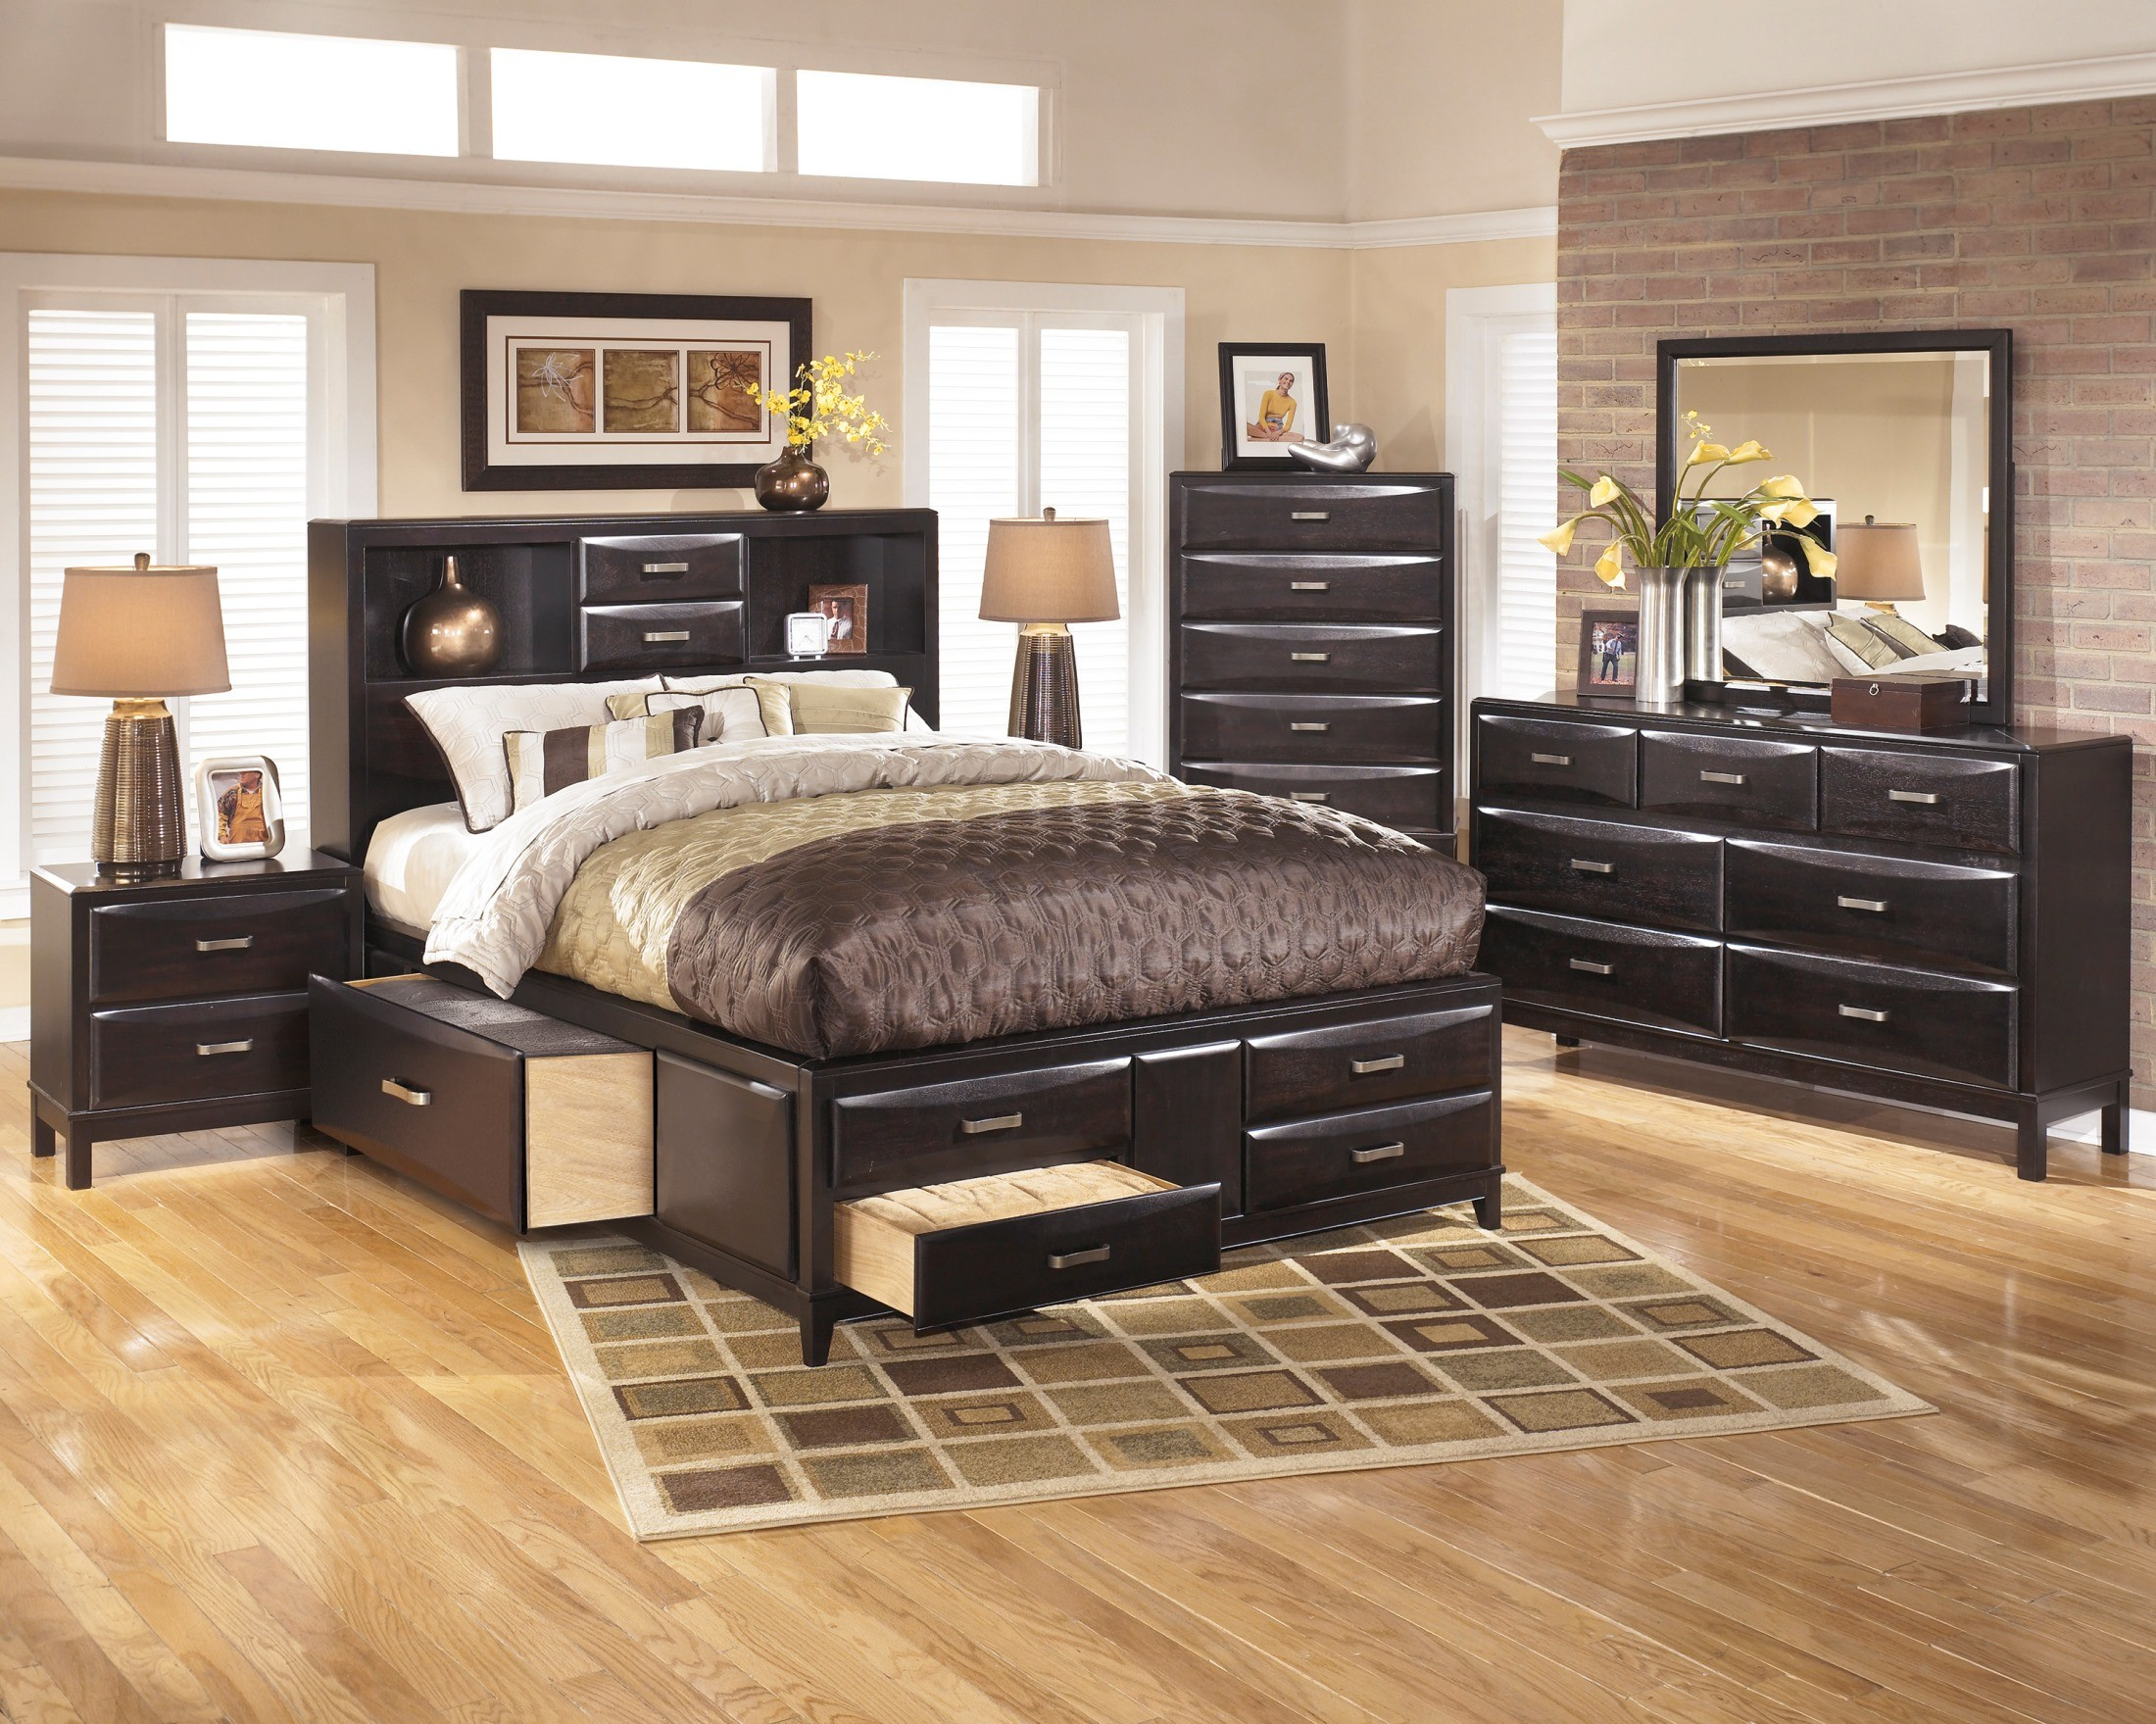 Kira King Storage Bed From Ashley B473 66 69 99